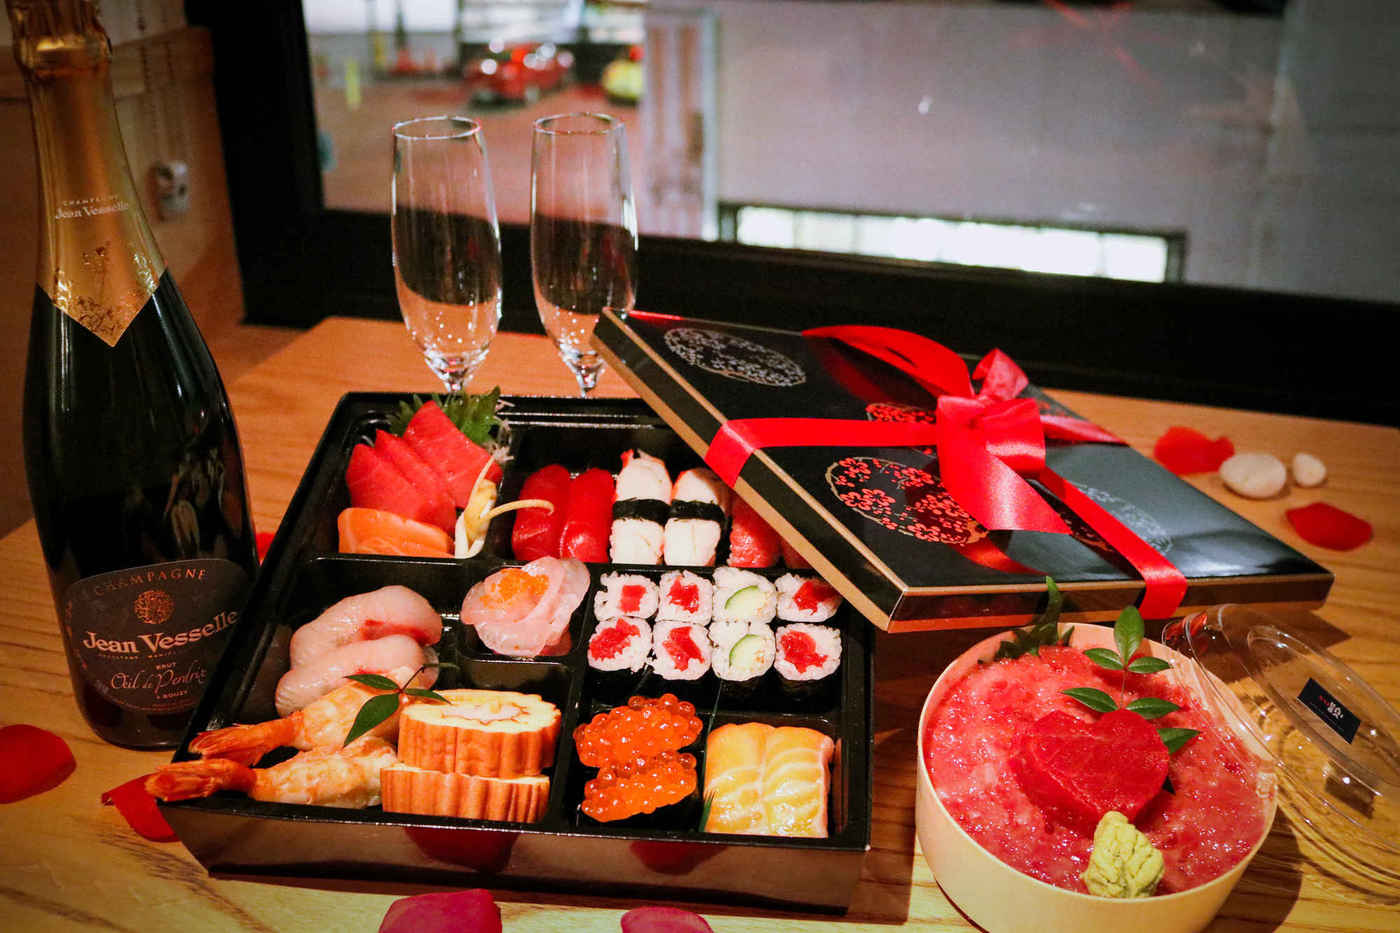 A black and white gift box revealing a selection of sushi, sitting next to two gasses of champagne and a small container with a heart-shaped piece of tuna